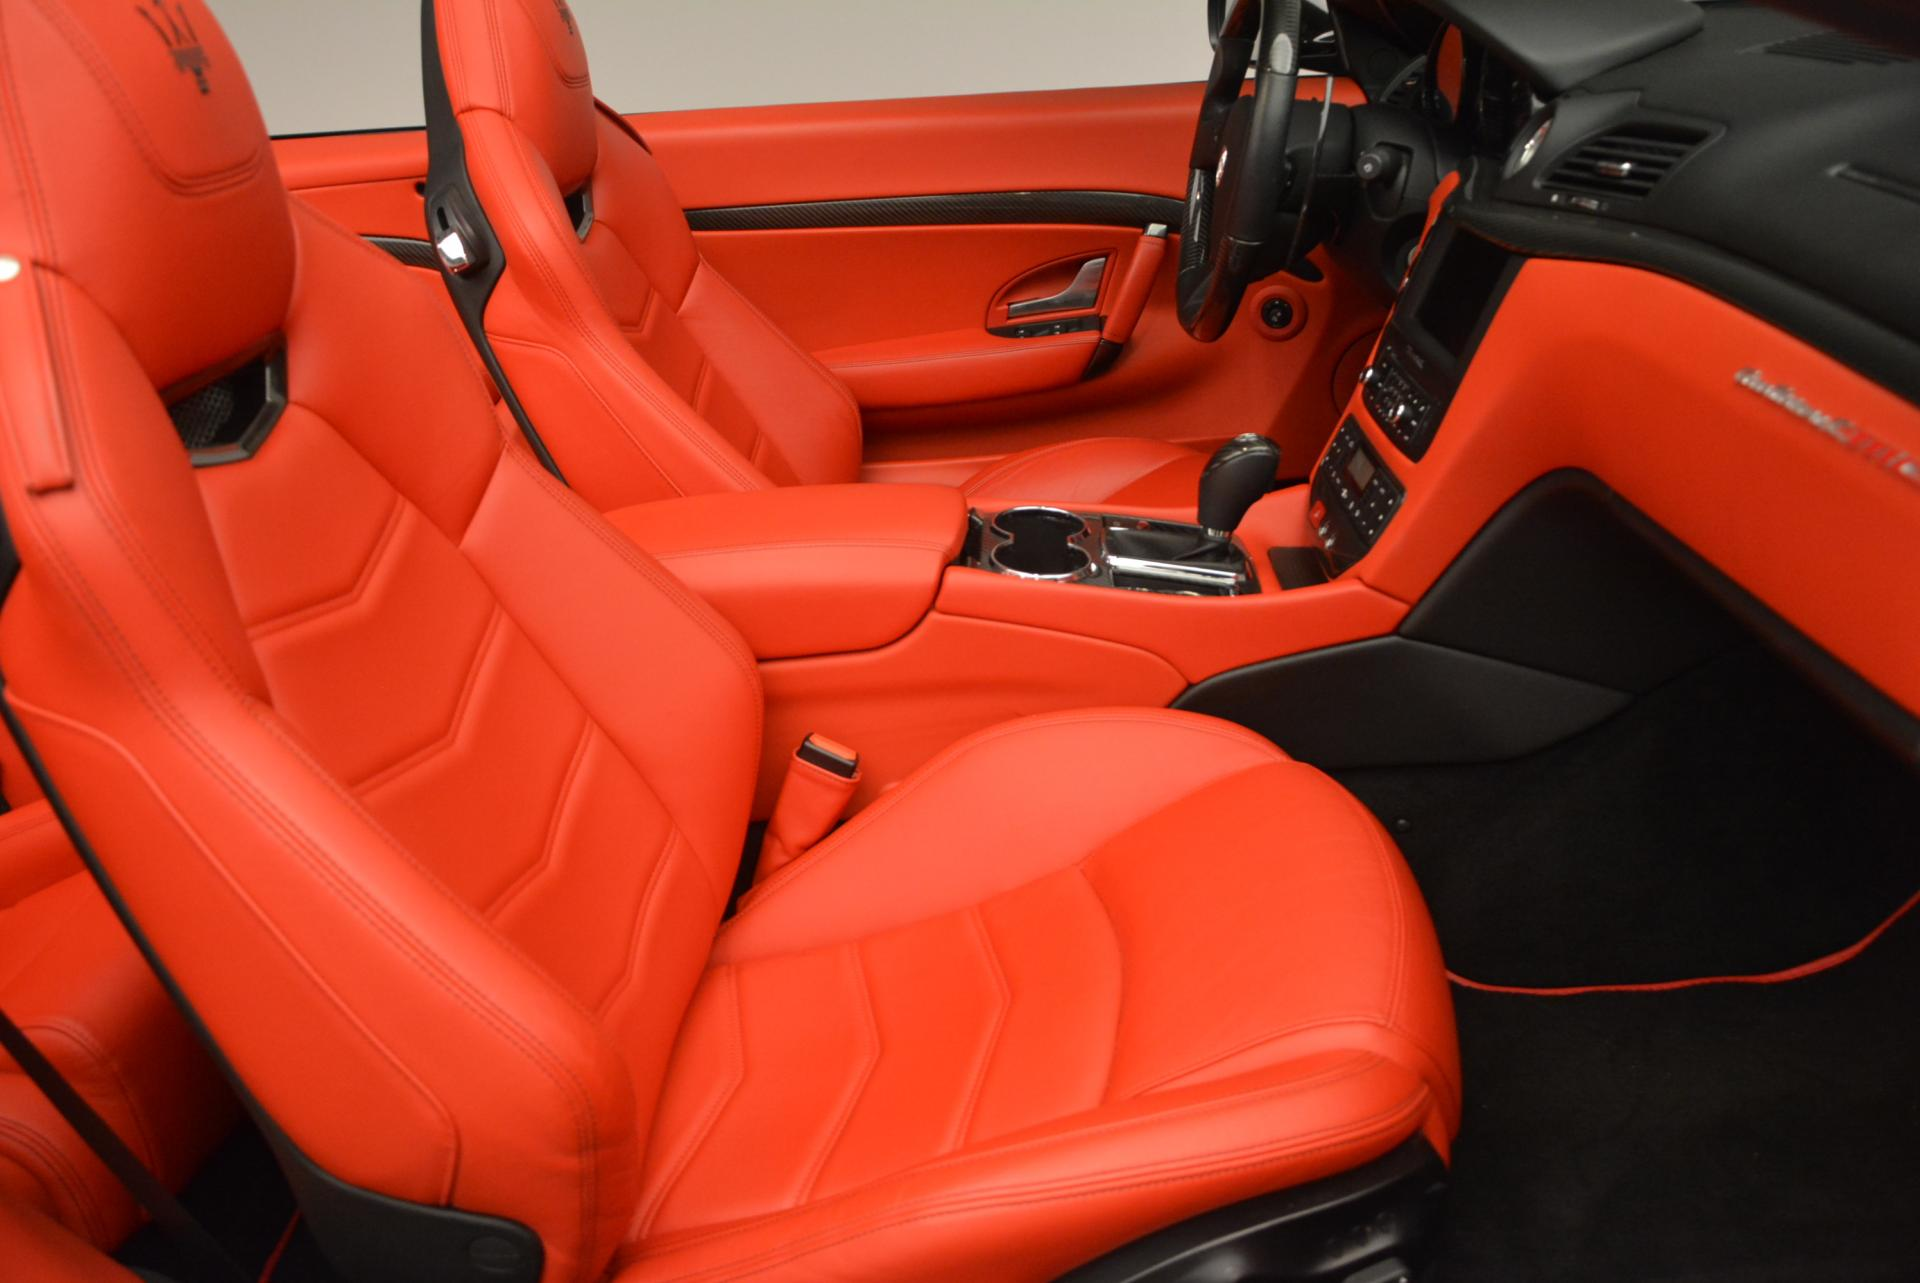 Used 2013 Maserati GranTurismo MC For Sale In Westport, CT 521_p28